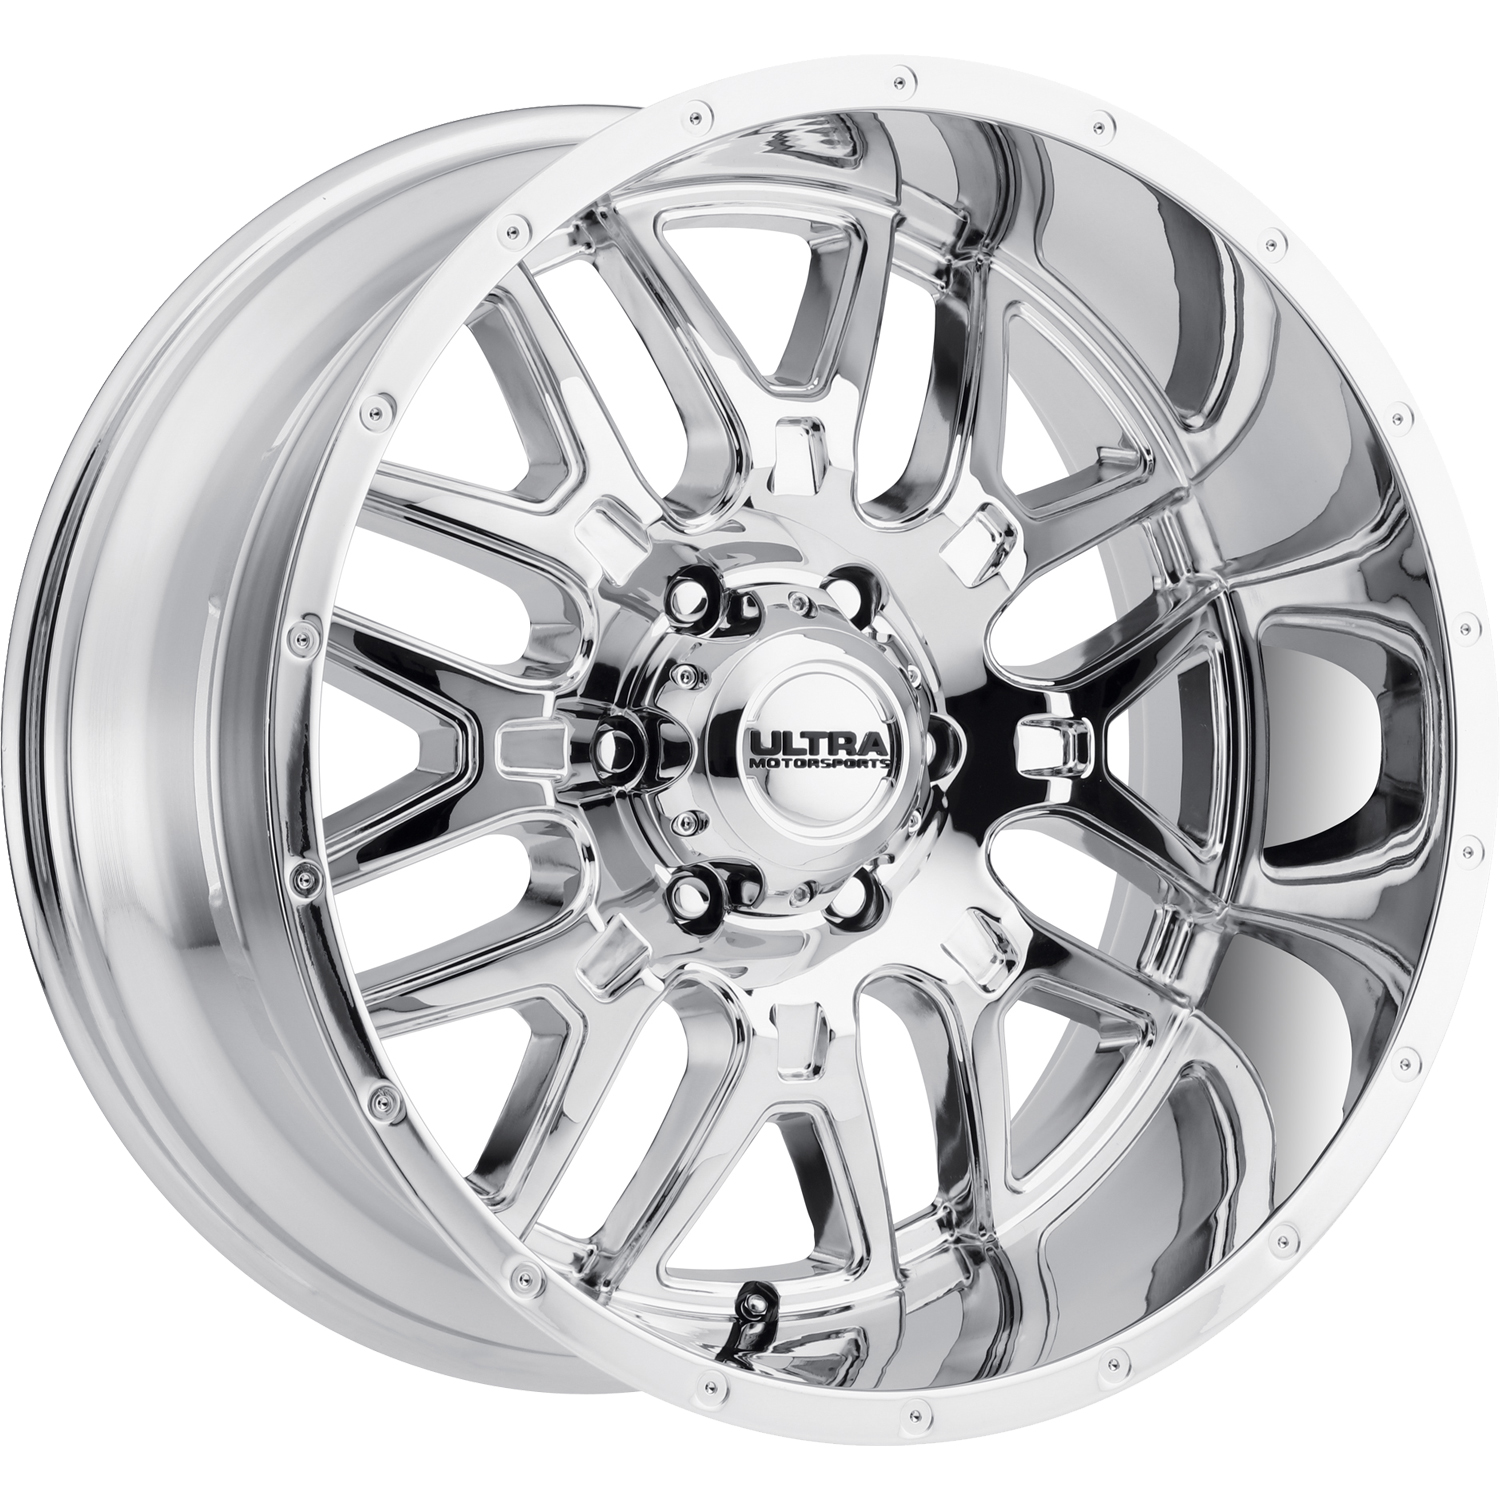 Ultra Hunter 20x9 +10mm | 203 2973C+10 &